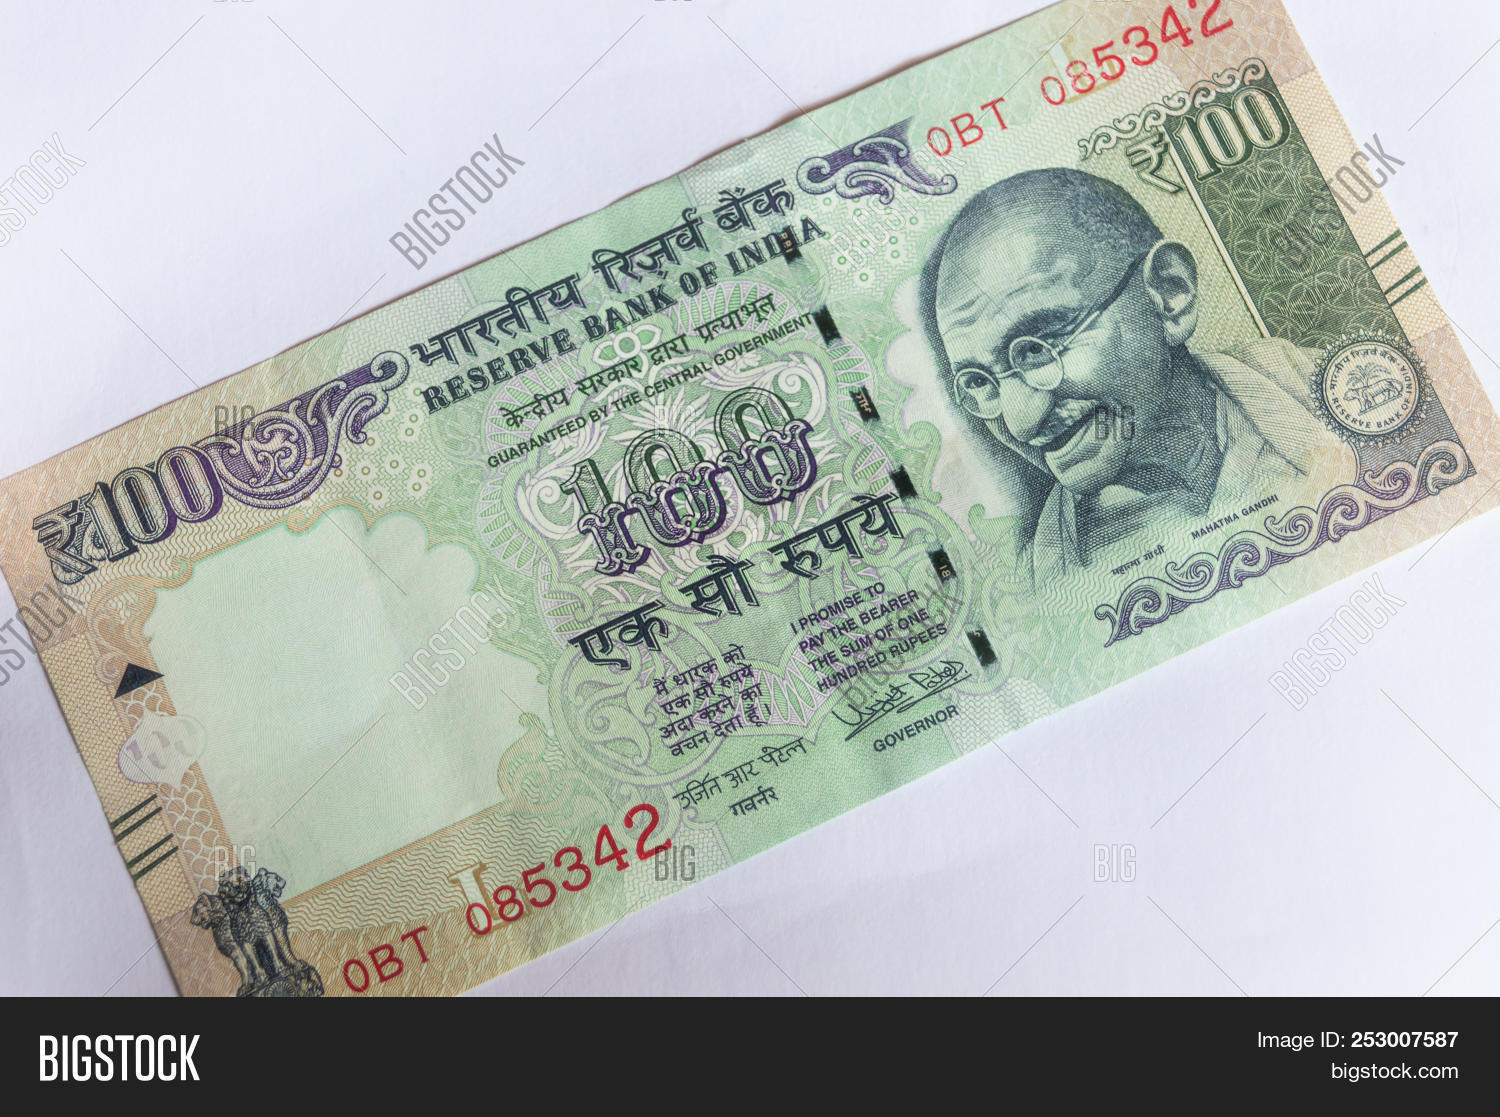 Indian Currency 100 Rs Image & Photo (Free Trial) | Bigstock